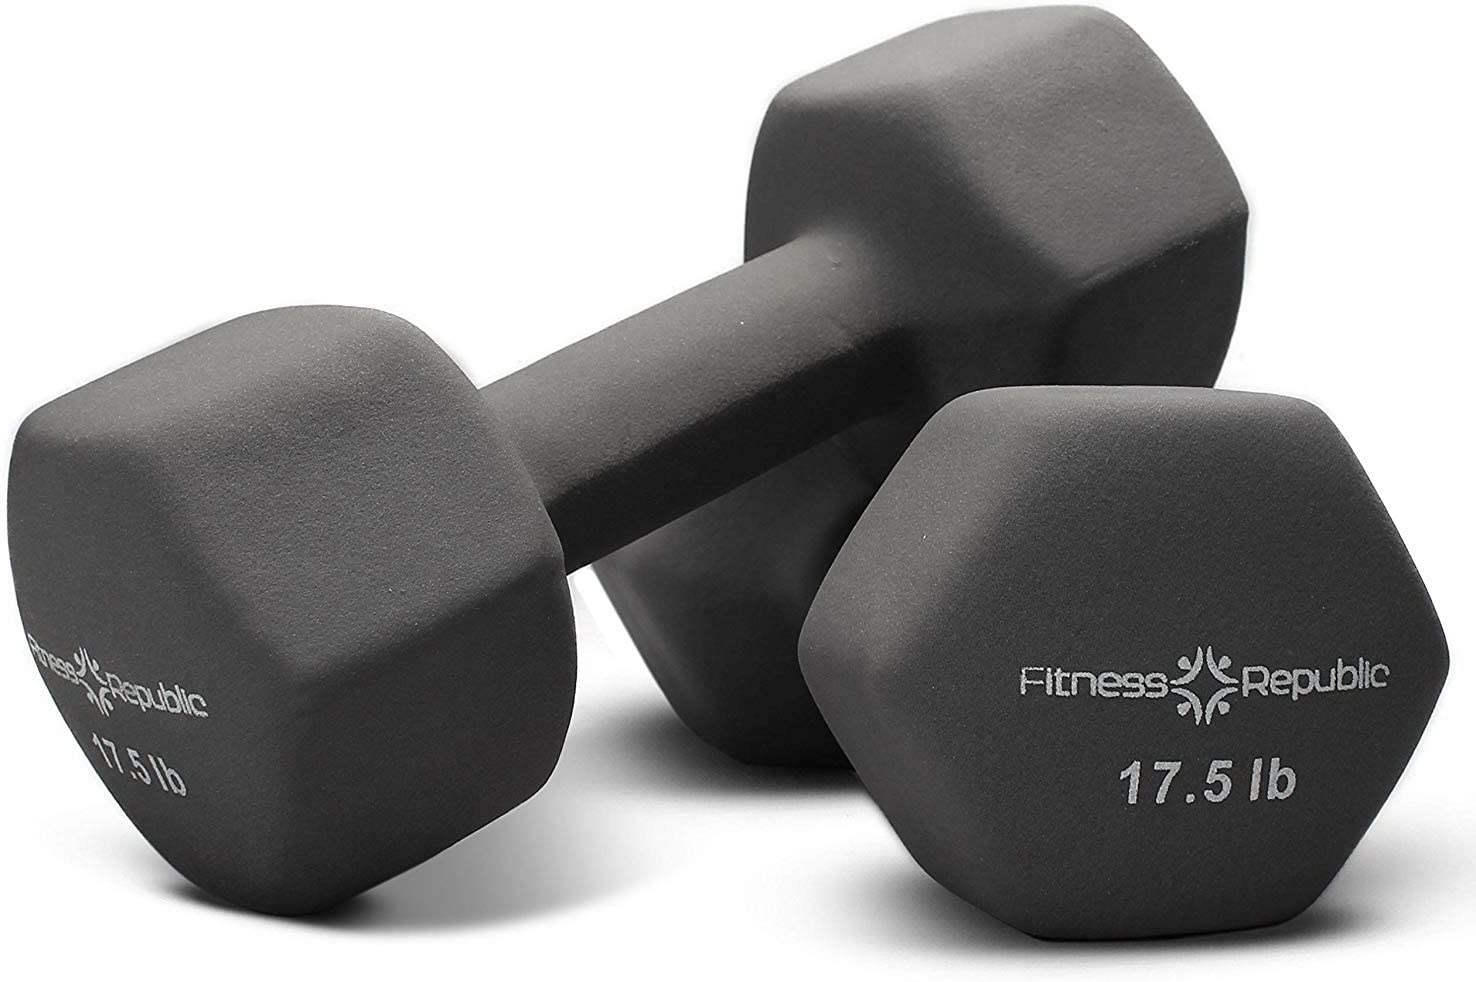 Fitness Republic Neoprene Dumbbell Set of 2, 2-20 Pounds Sets Non-Slip, Hex Shape, Free weights set for Muscle Toning, Strength Building, Weight Loss – Portable Weights for Home Gym Hand Weight